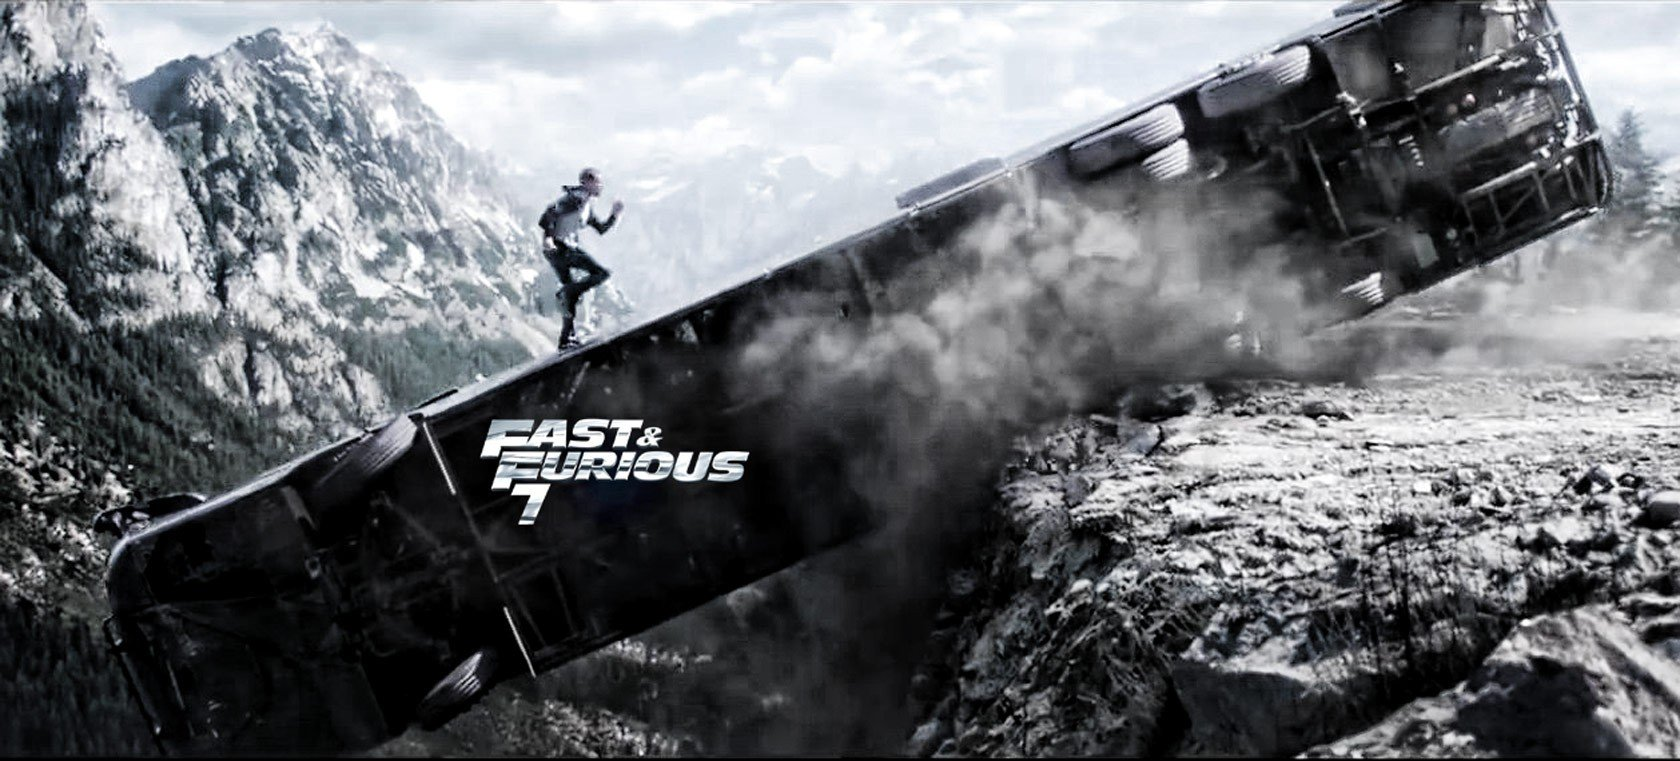 Fast And Furious 7 Movie Action Trailer HD Wallpaper   Stylish HD 1680x761